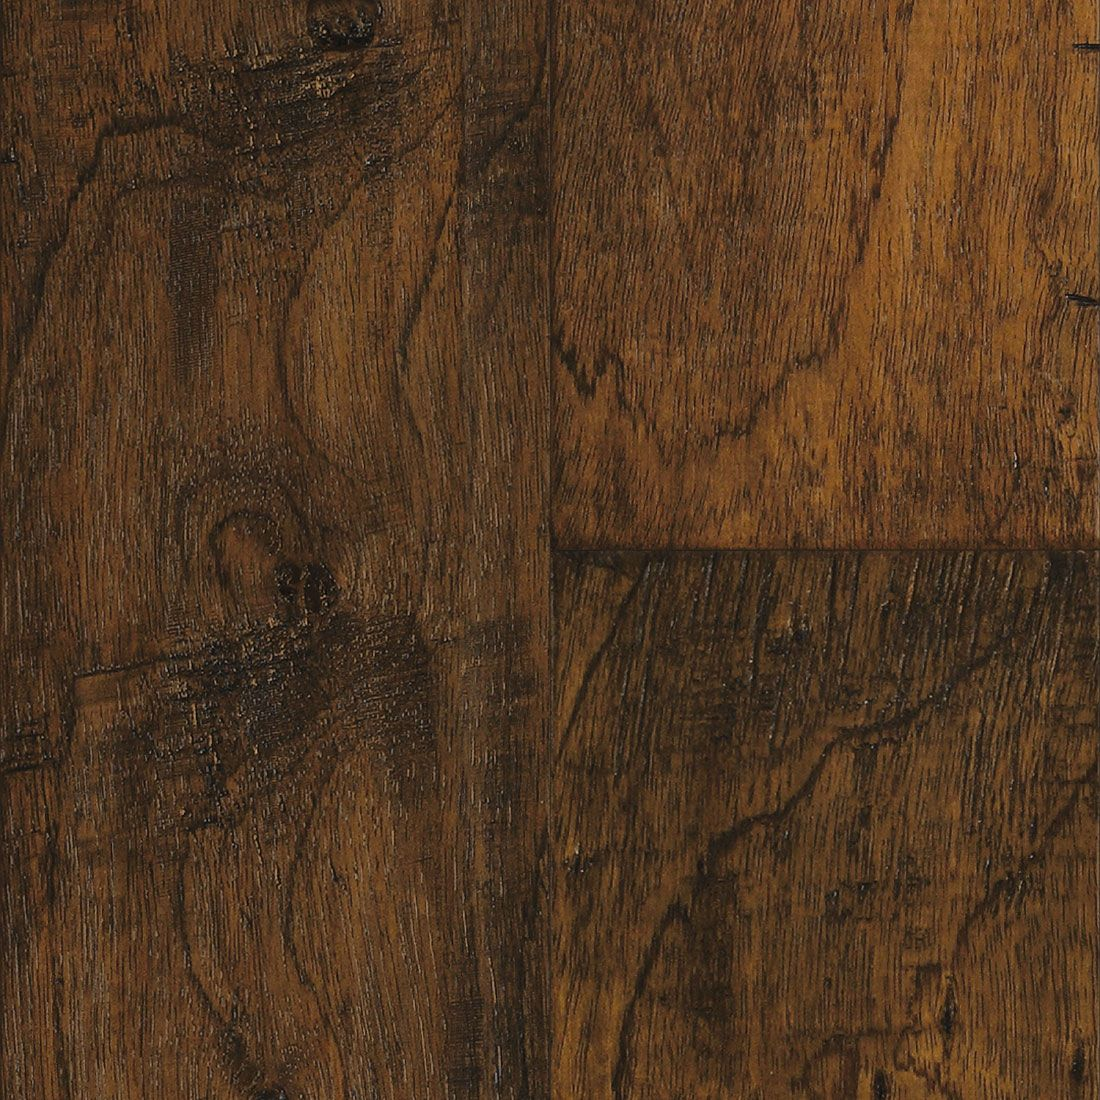 Mayan Pecan Clove Ideas for the House in 2019 Flooring